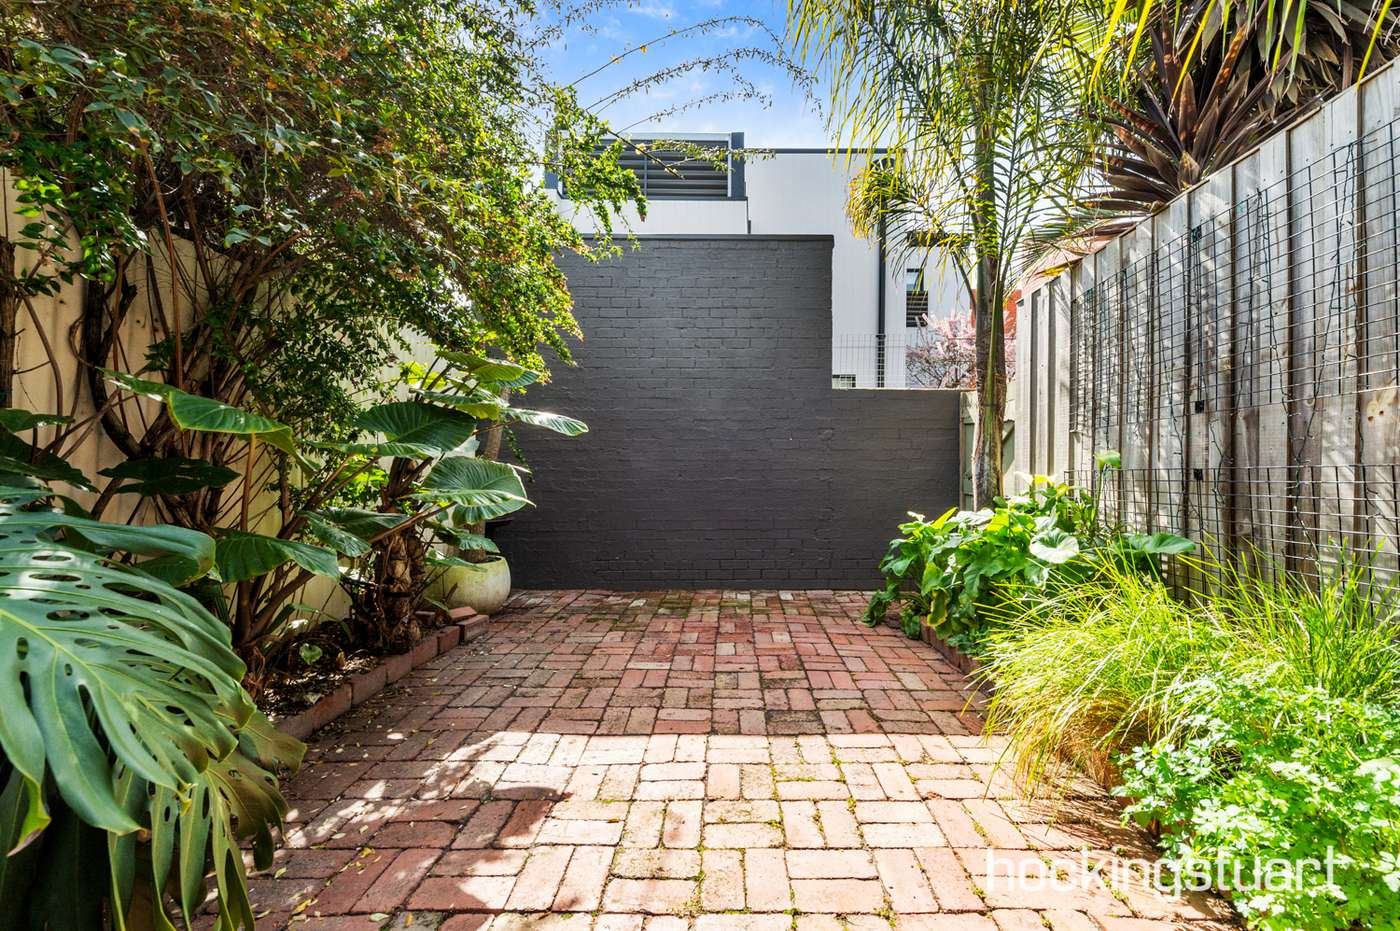 Main view of Homely house listing, 29 Cardigan Place, Albert Park, VIC 3206